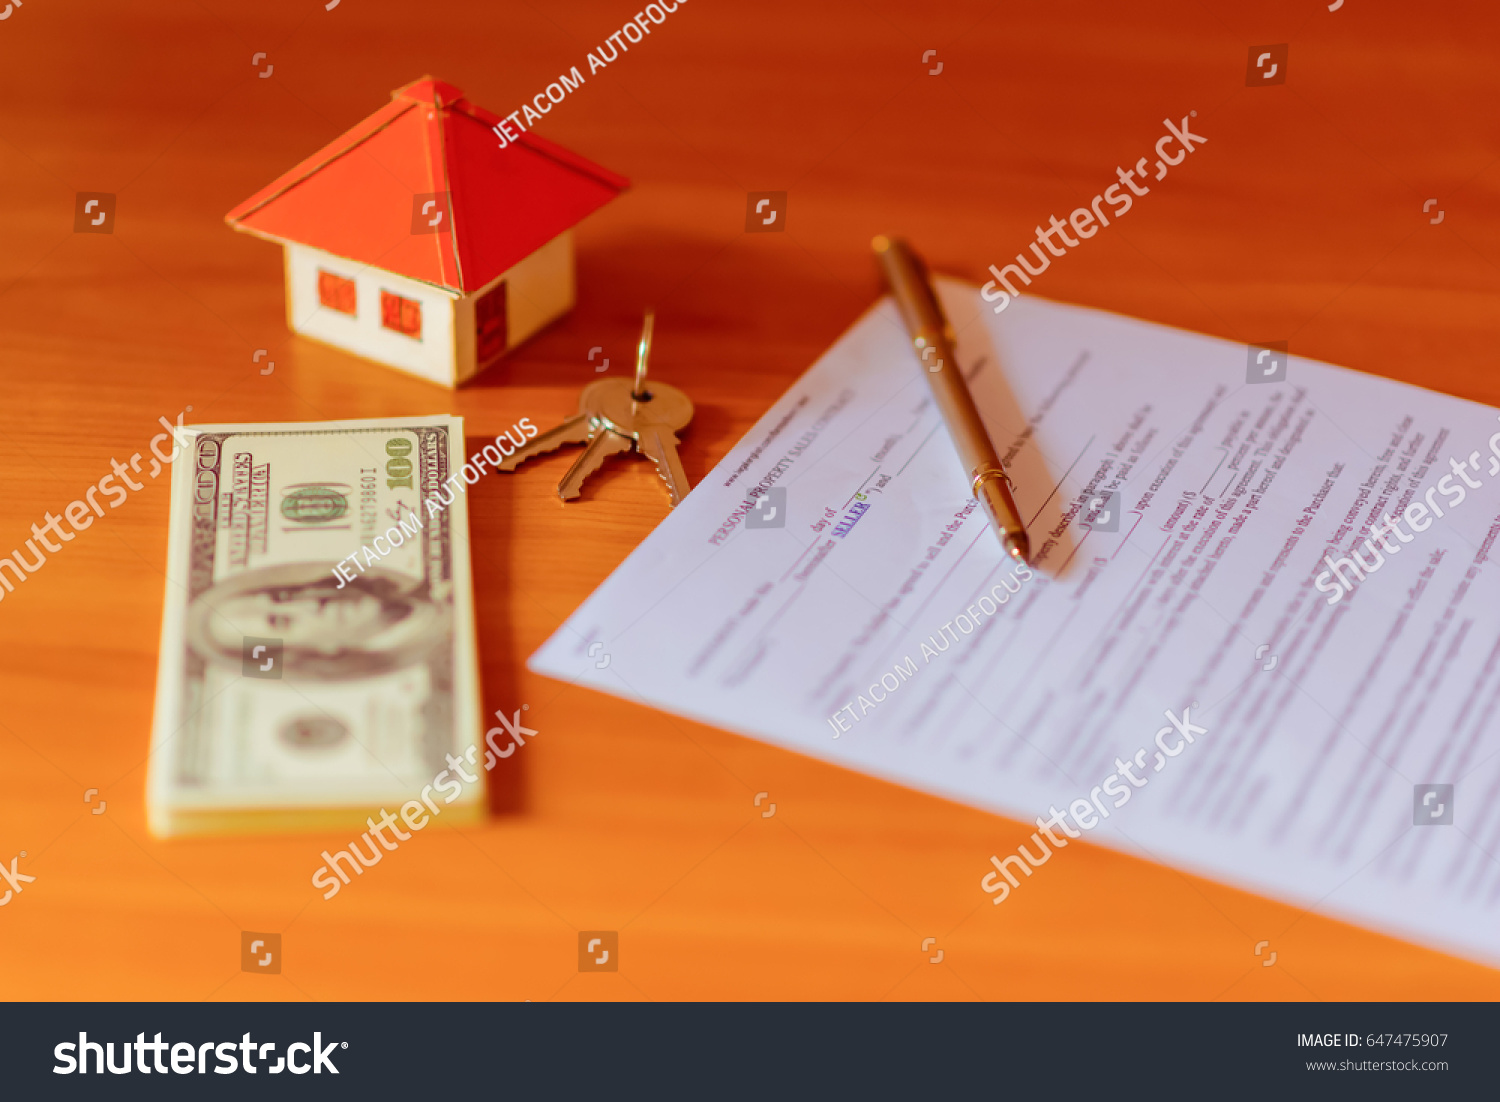 Real Estate Broker Sale Contract For House Resale Agreement With Ink Pen  And House Keys On